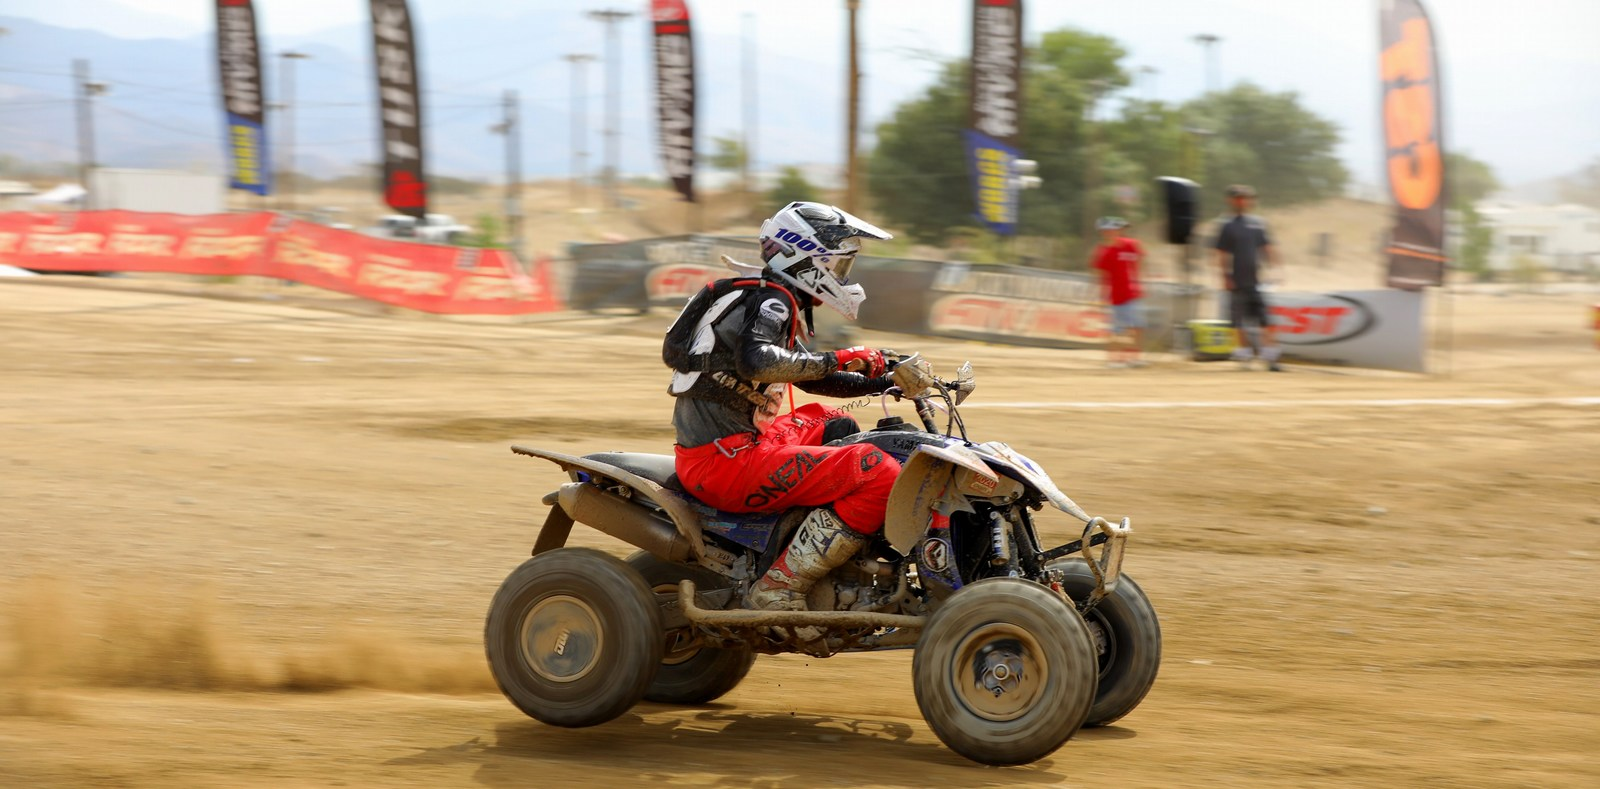 2019-06-austin-turner-atv-proam-worcs-racing